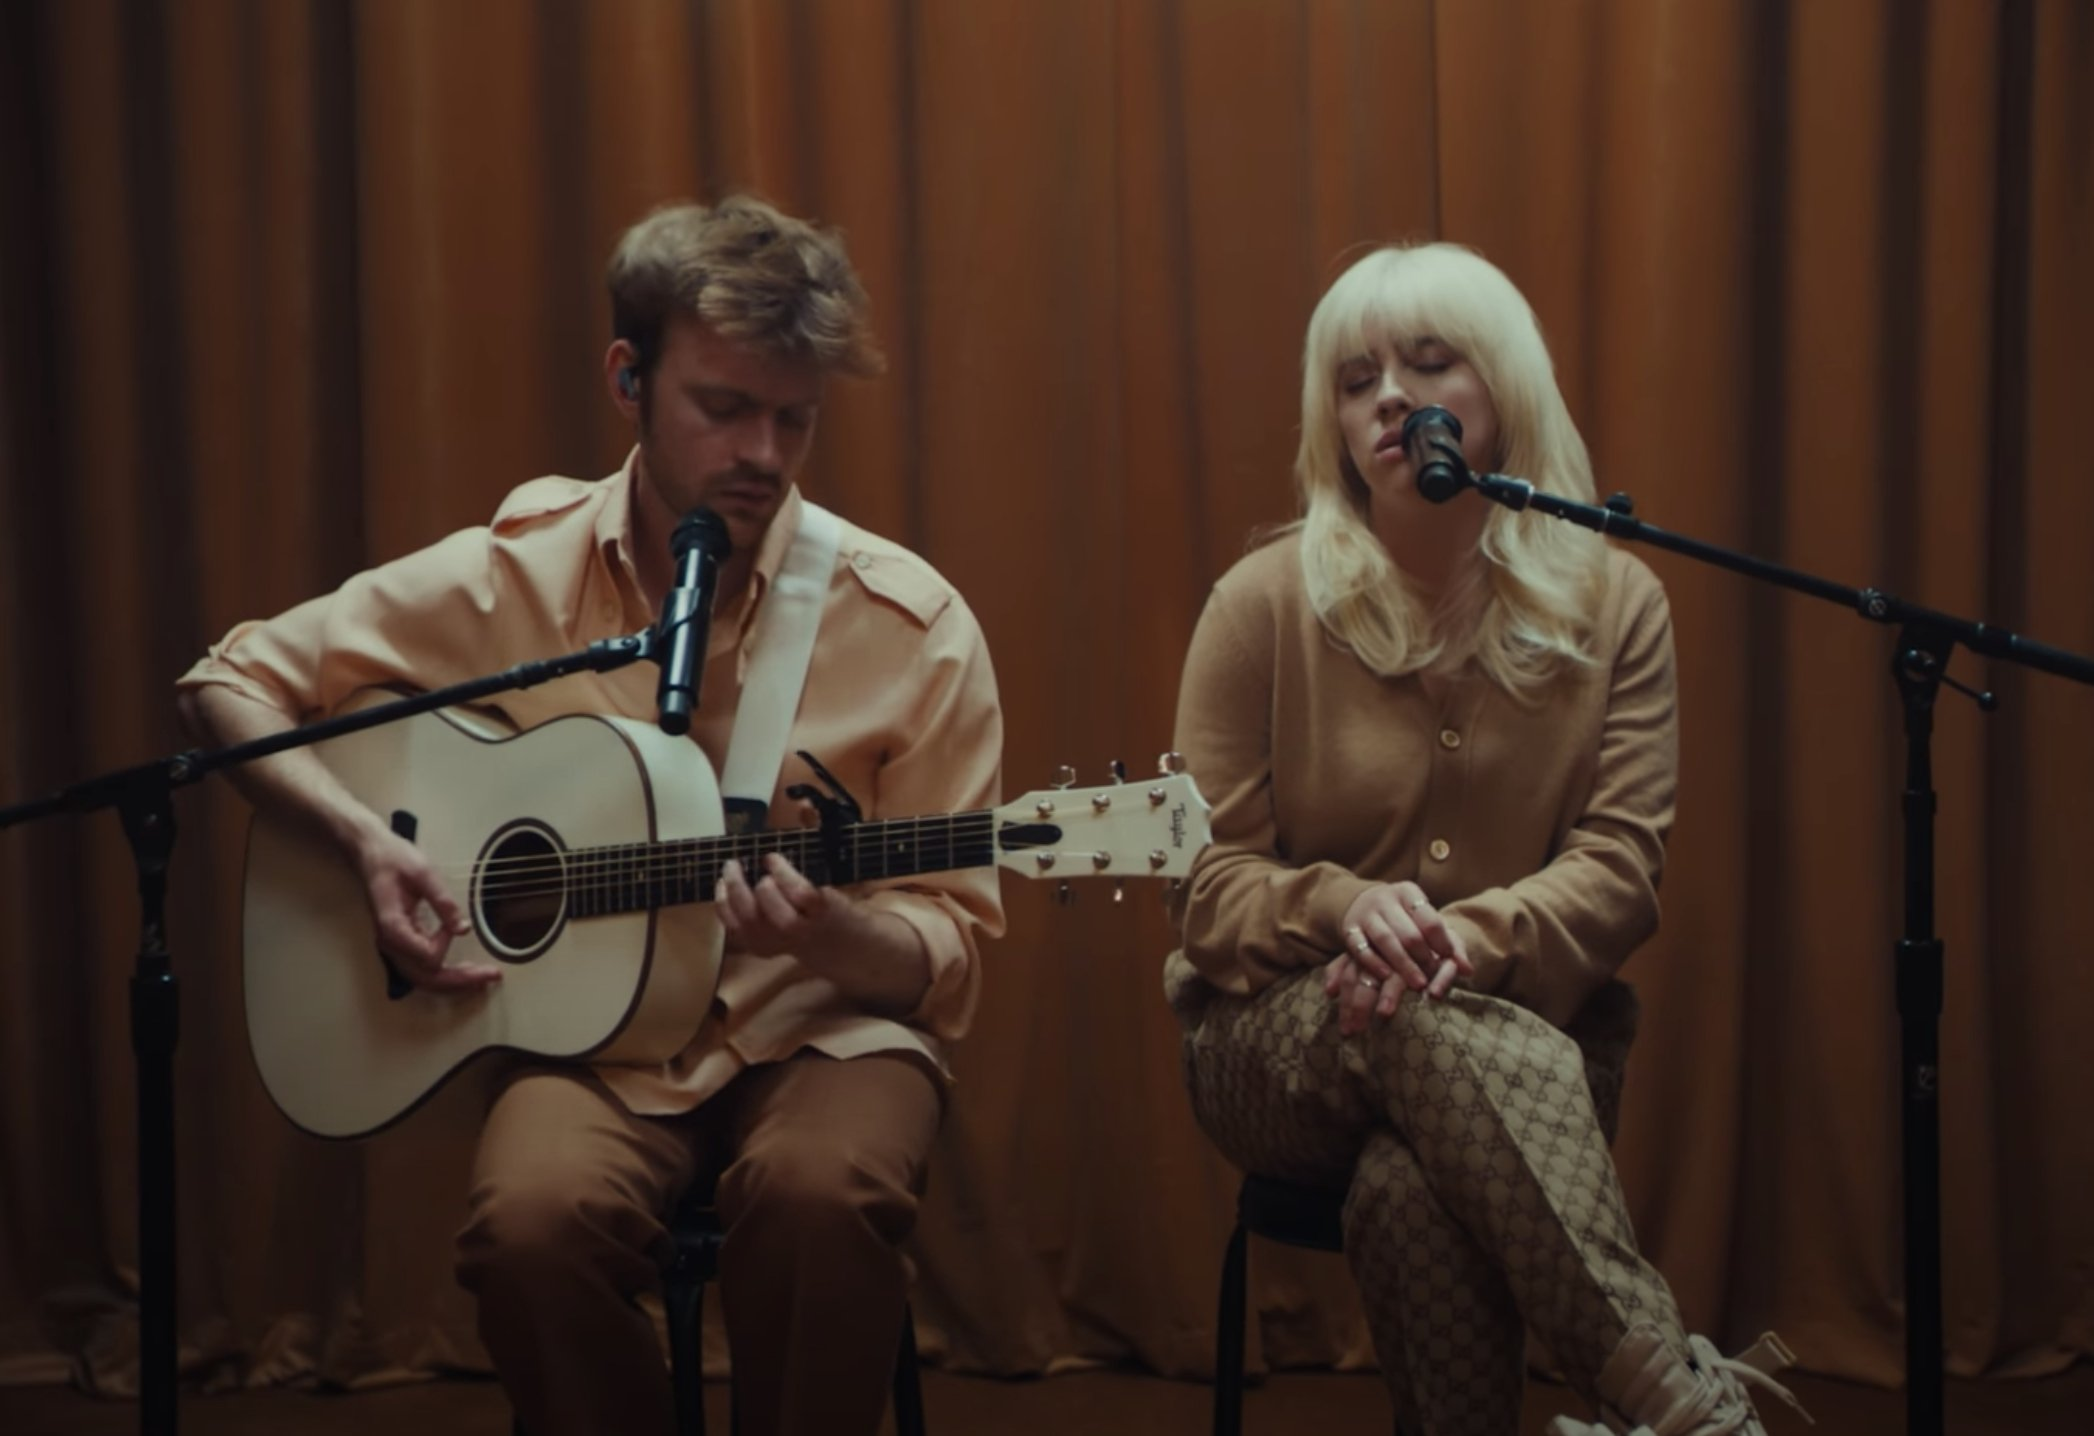 See Billie Eilish, Finneas Perform Acoustic Live Take on 'Your Power'